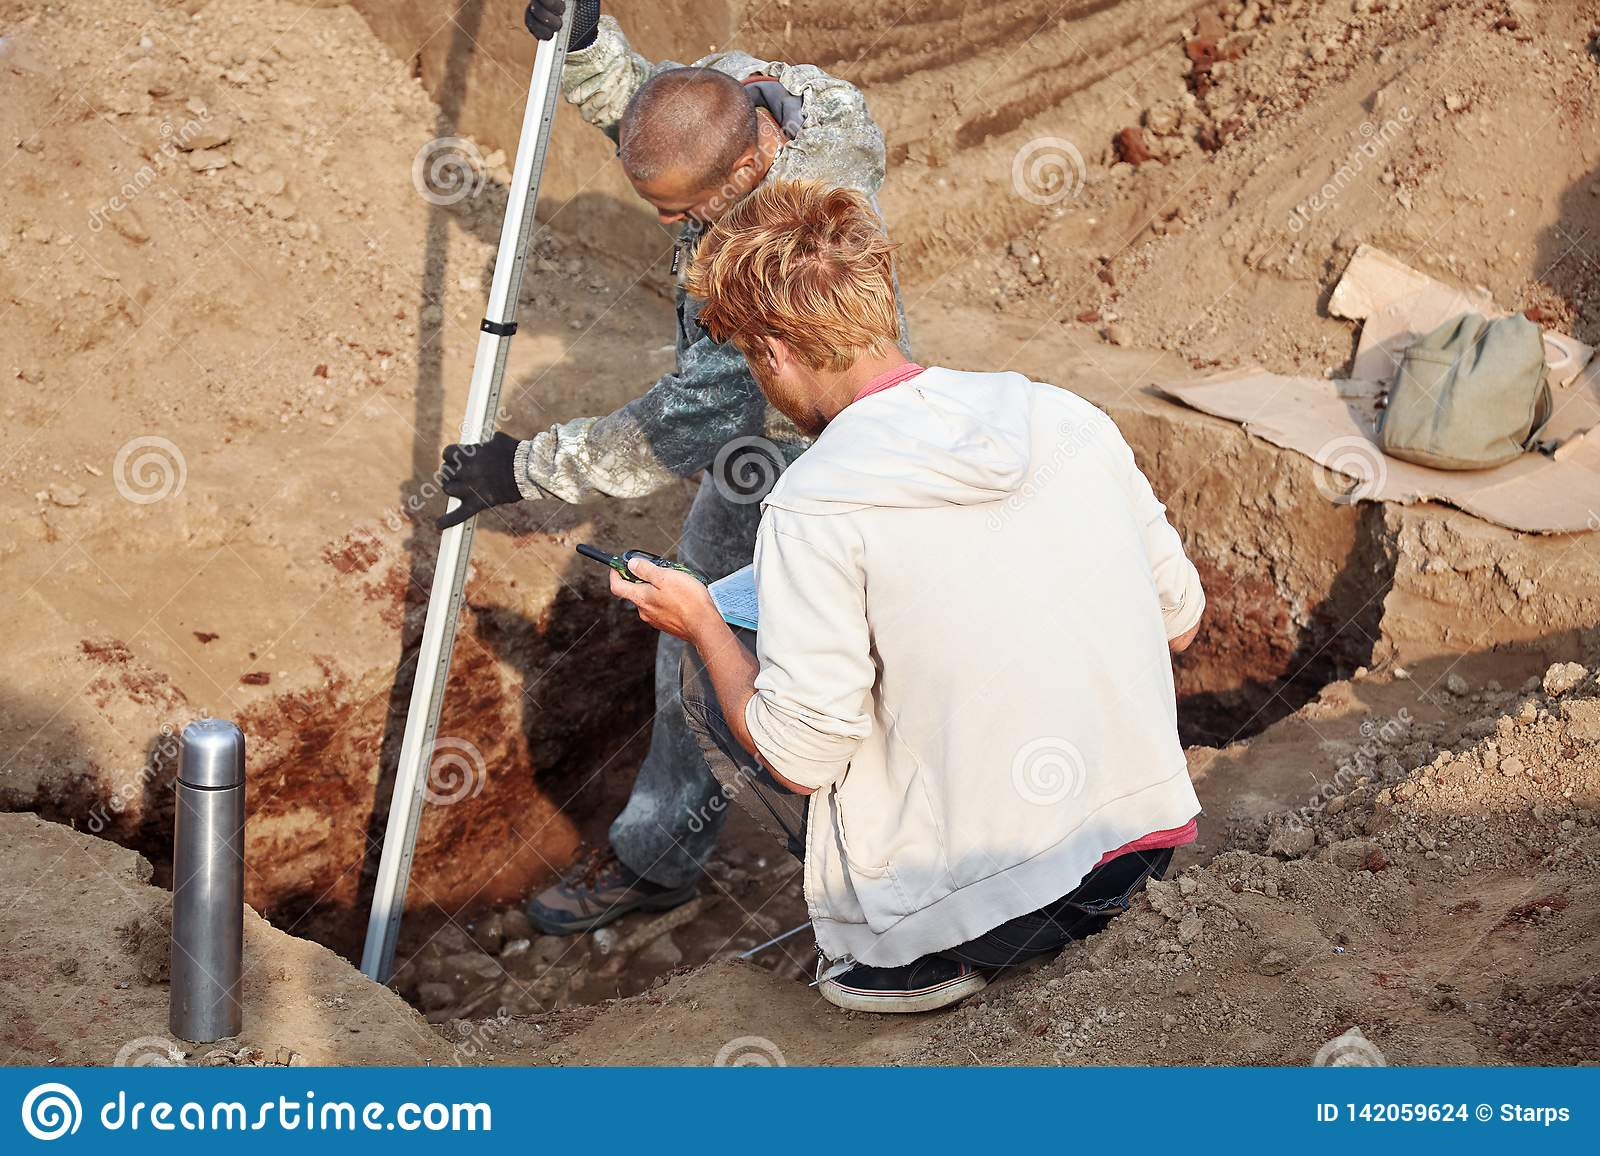 Two men at work outdoors, in digger process. Archaeological excavations.